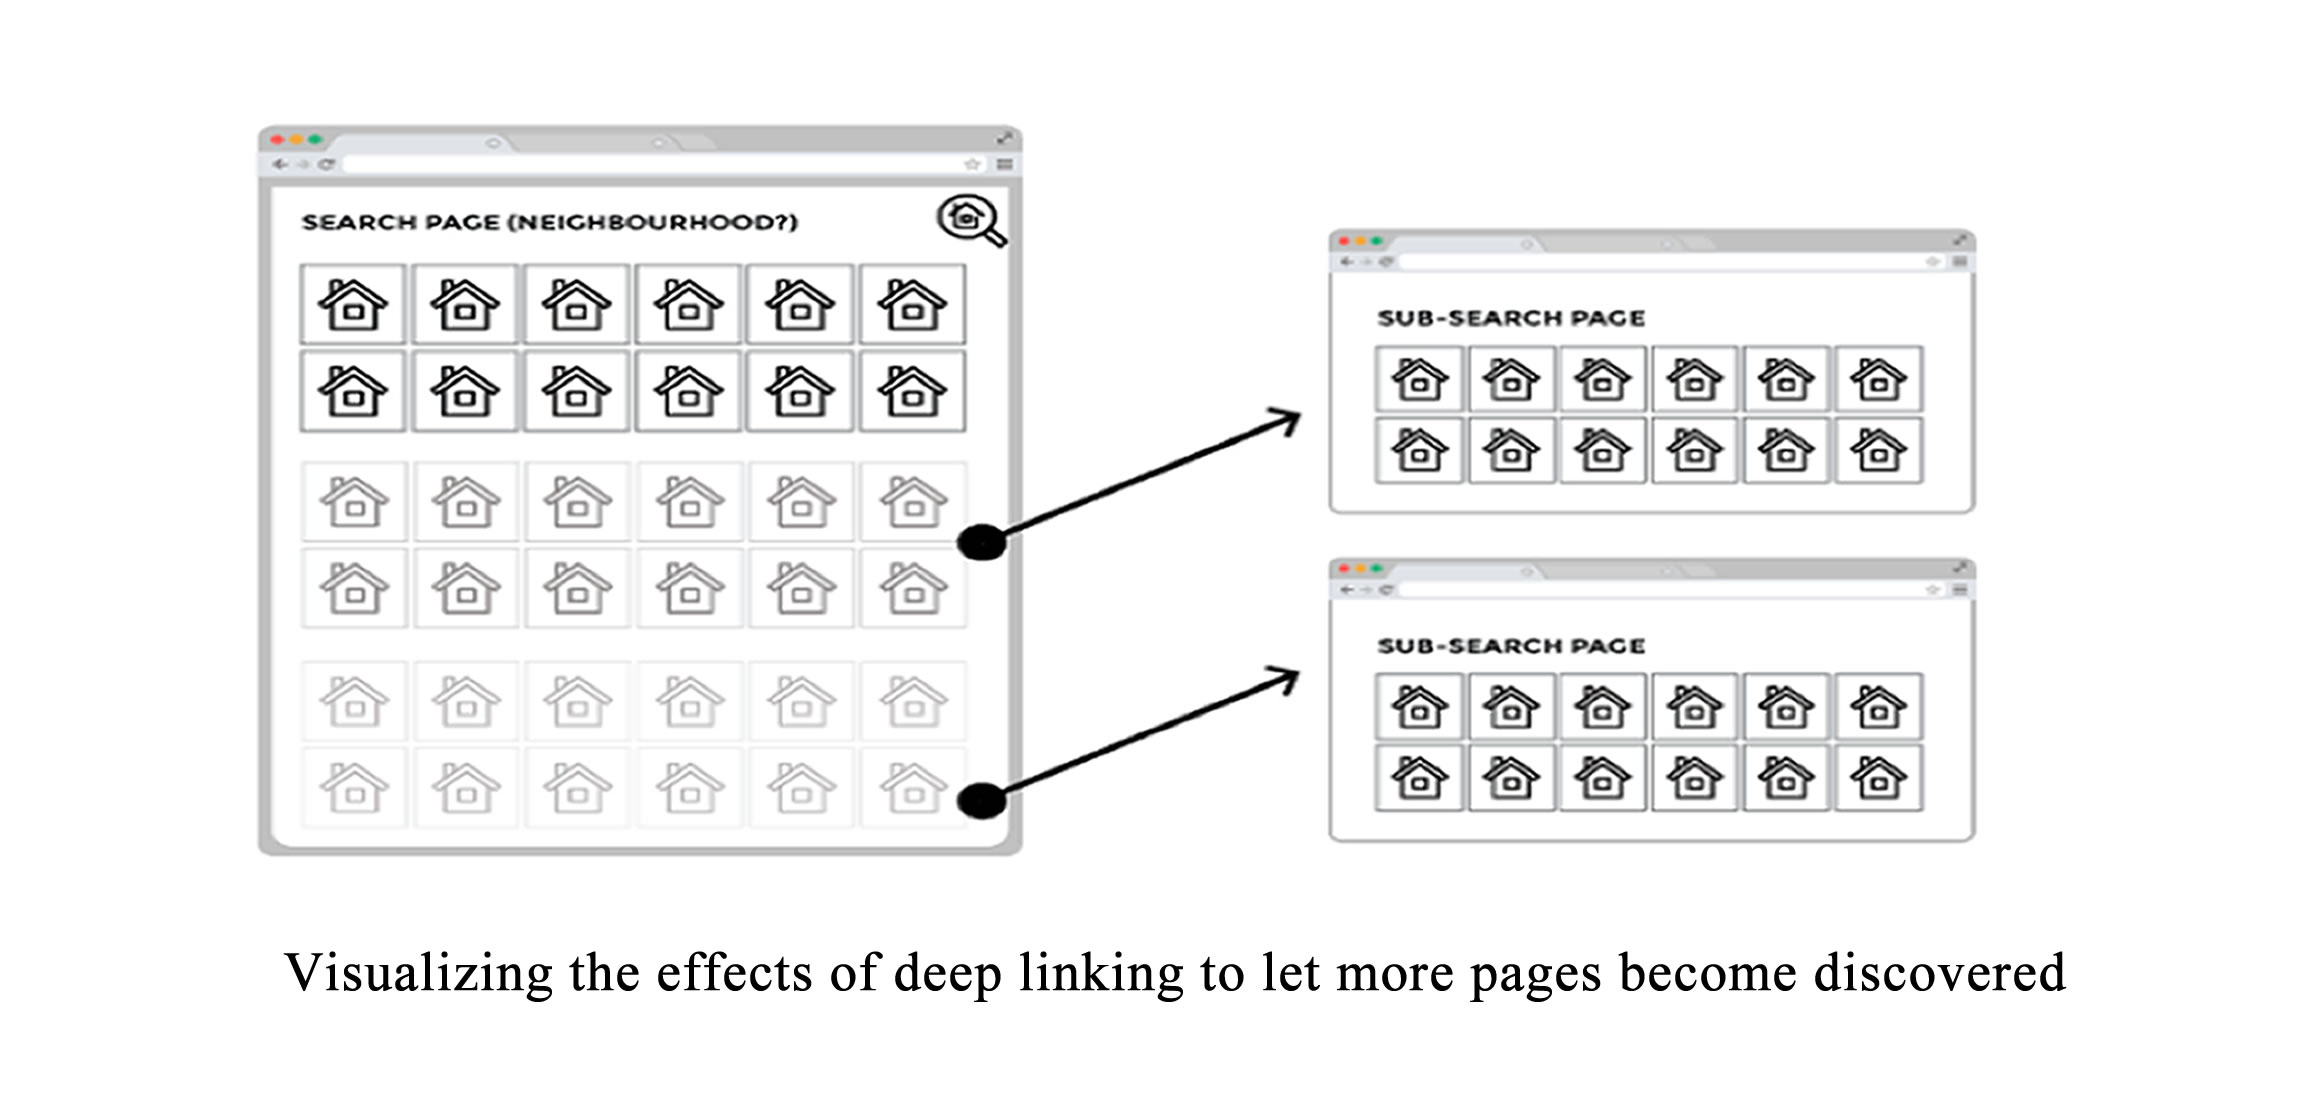 Visualizing the effects of deep linking to let more pages become discovered